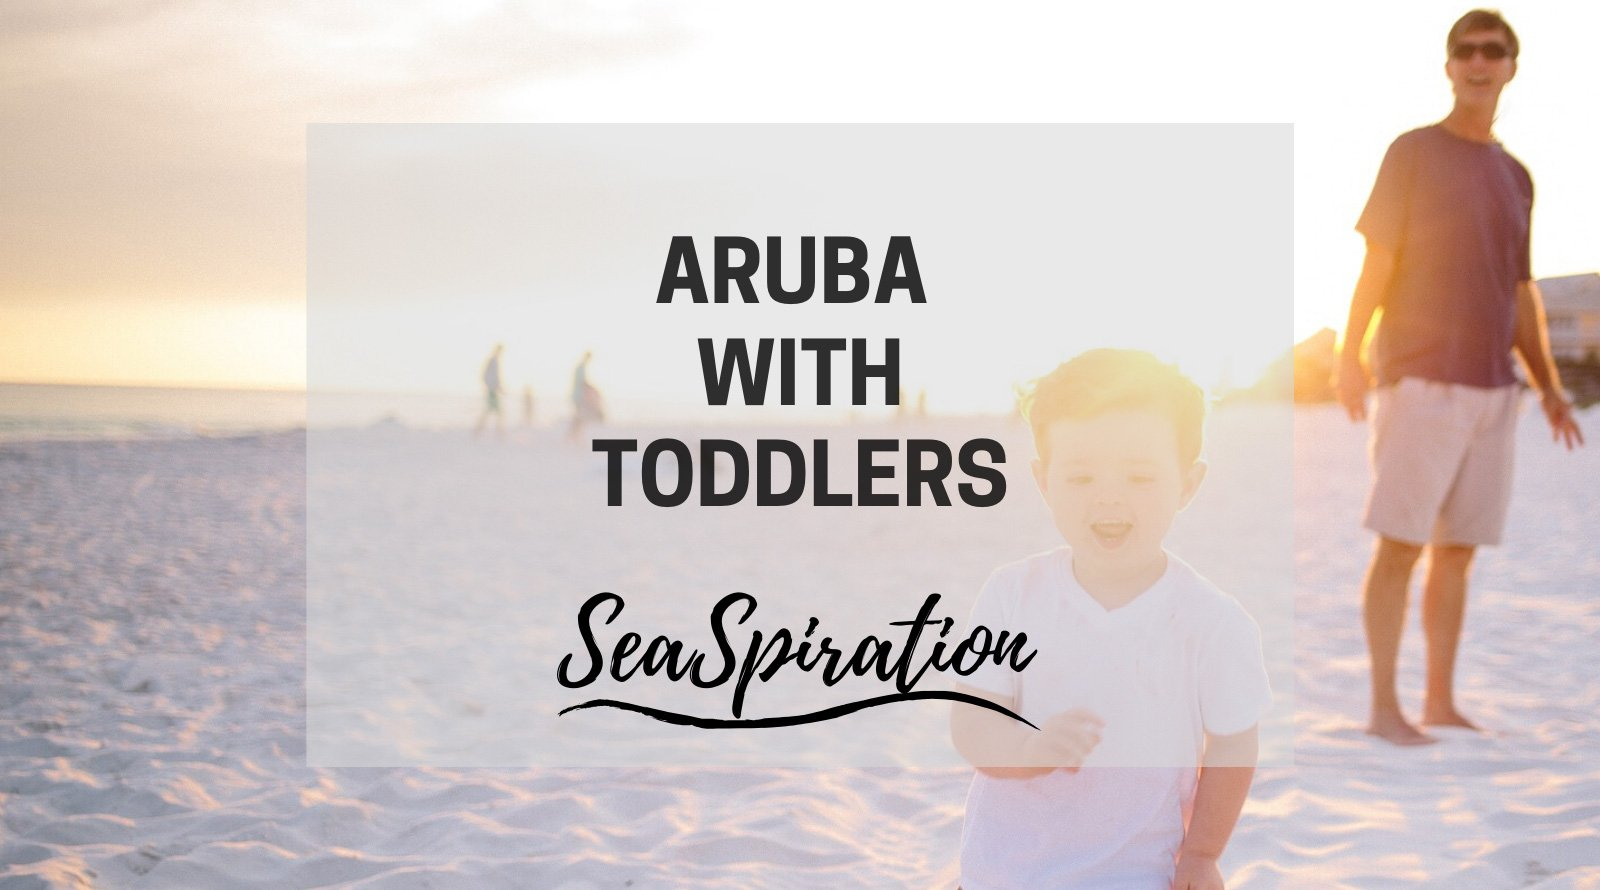 Aruba with toddlers